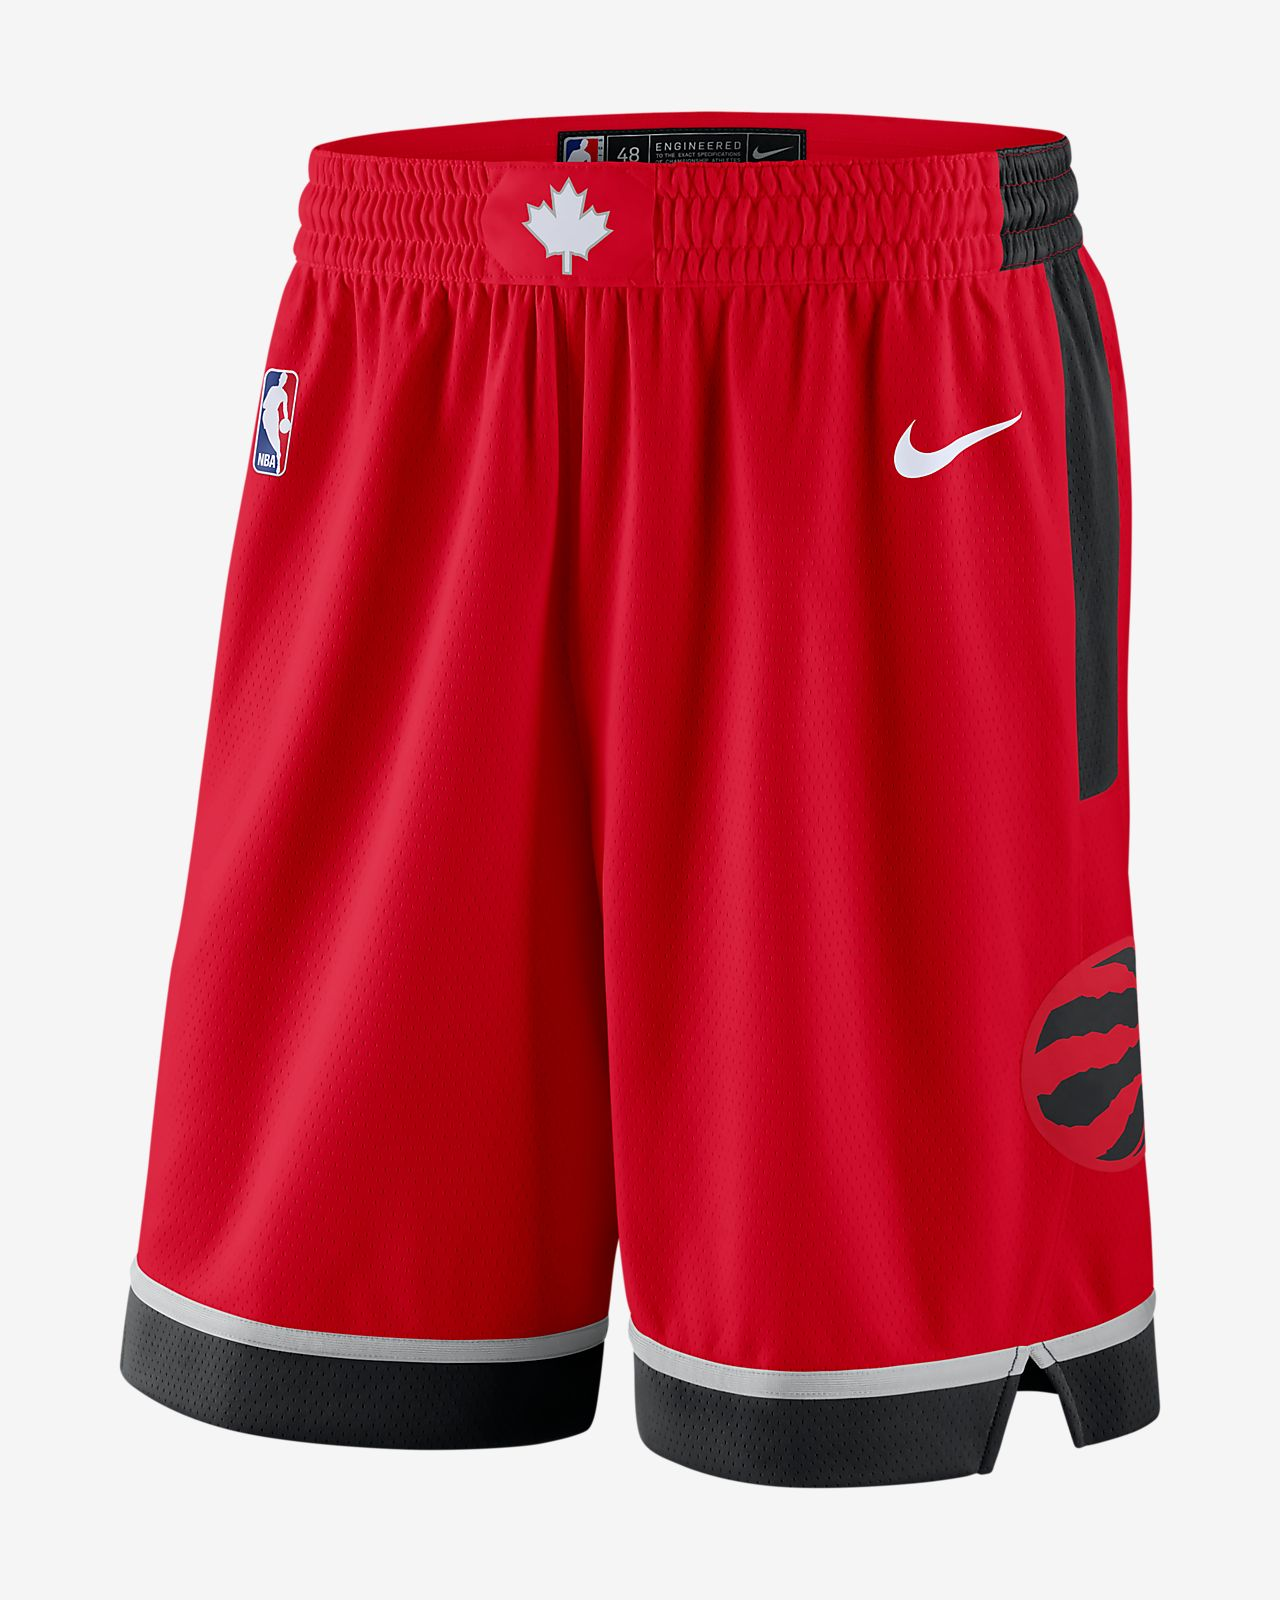 Toronto Raptors Icon Edition Swingman Men's Nike NBA Shorts